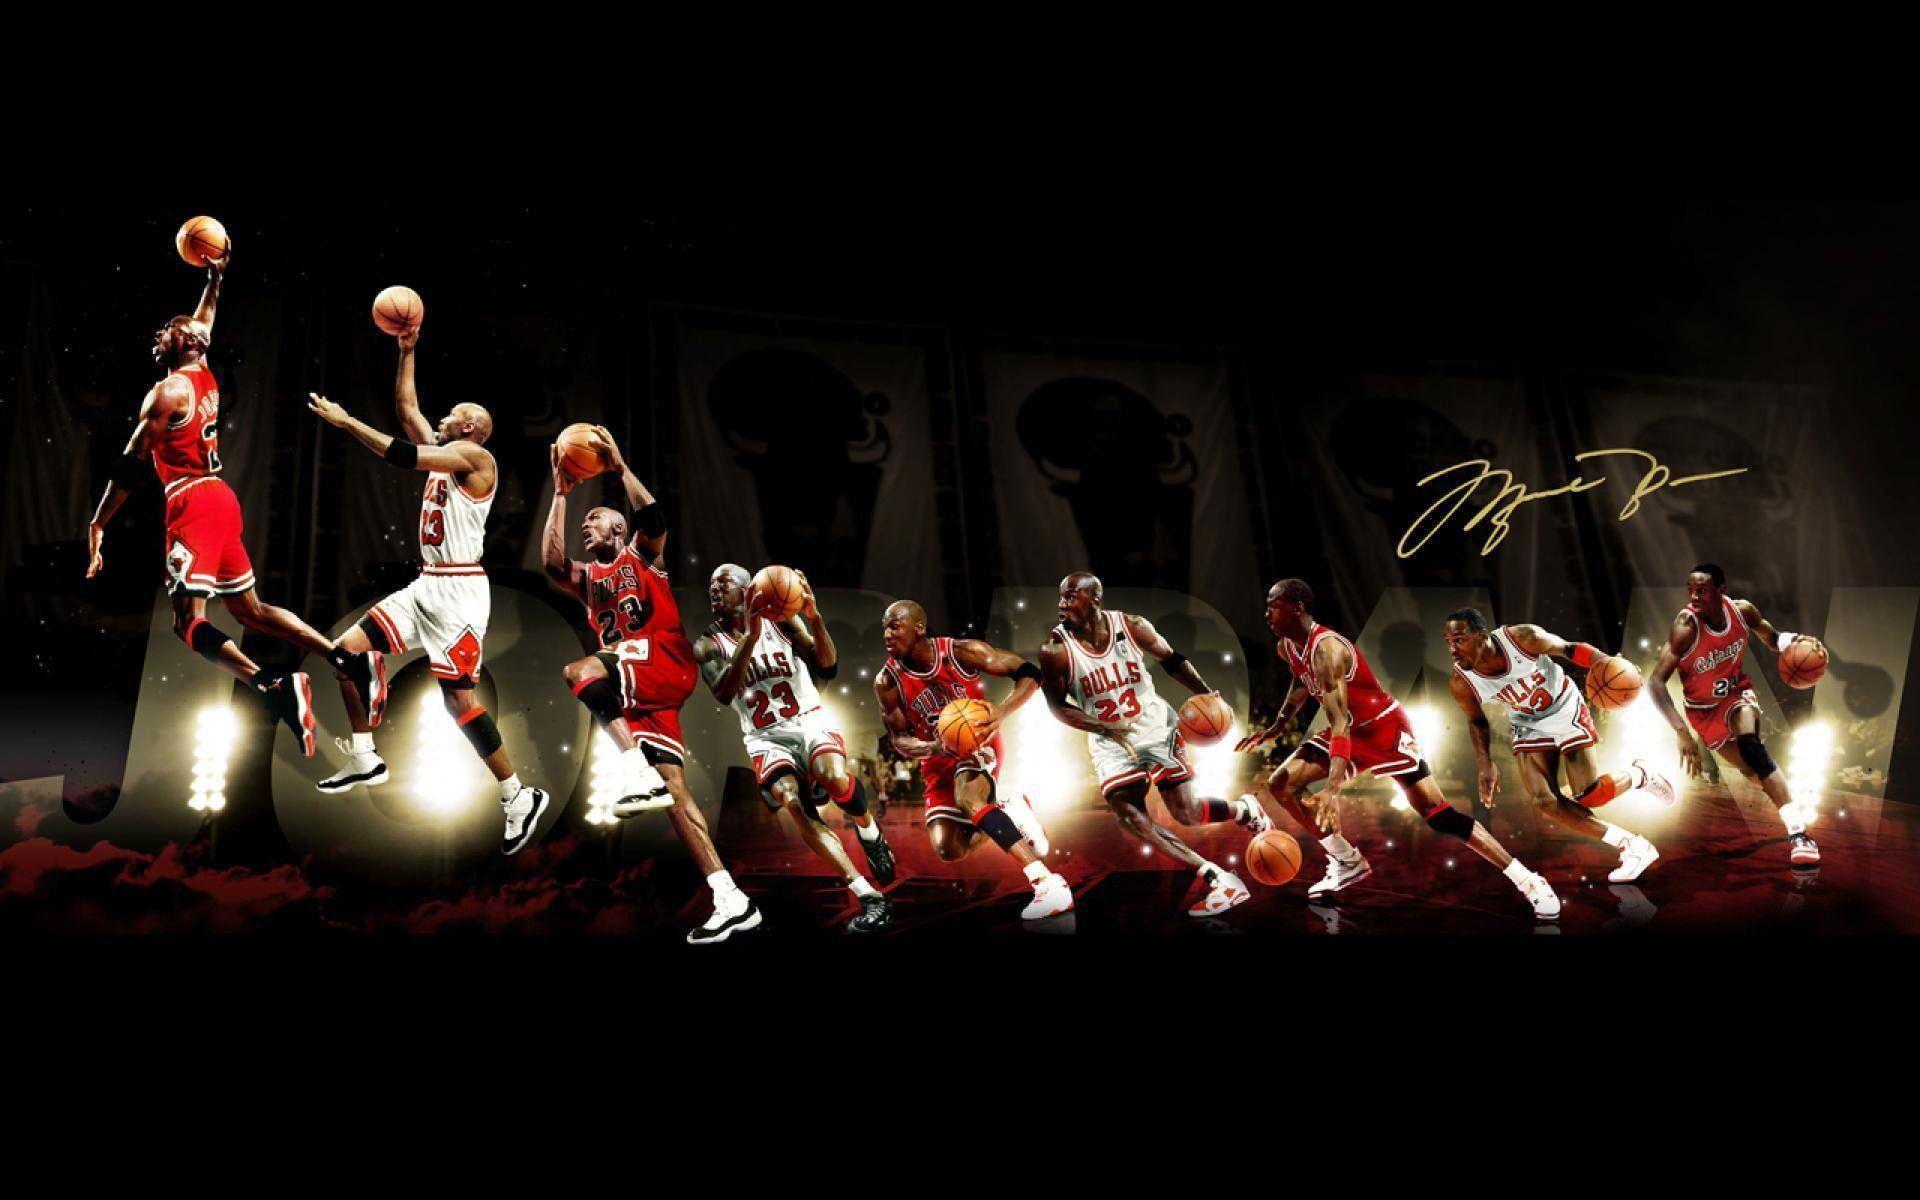 Most Downloaded Michael Jordan Wallpapers - Full HD wallpaper search